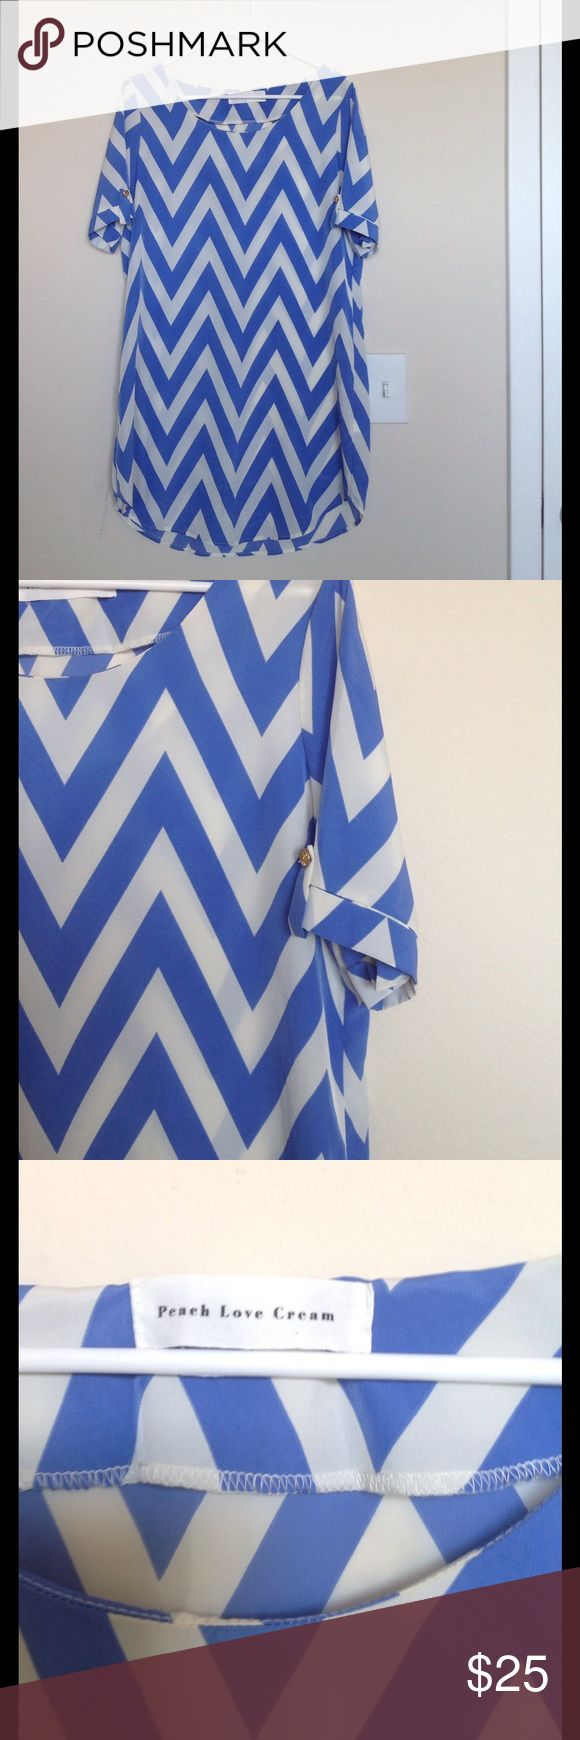 Boutique Blue Chevron Dress Size Large Only worn twice.  Super cute chevron boutique dress.   Pair with a belt and wedges for a great summer outfit! Peach Love Cream Dresses Mini